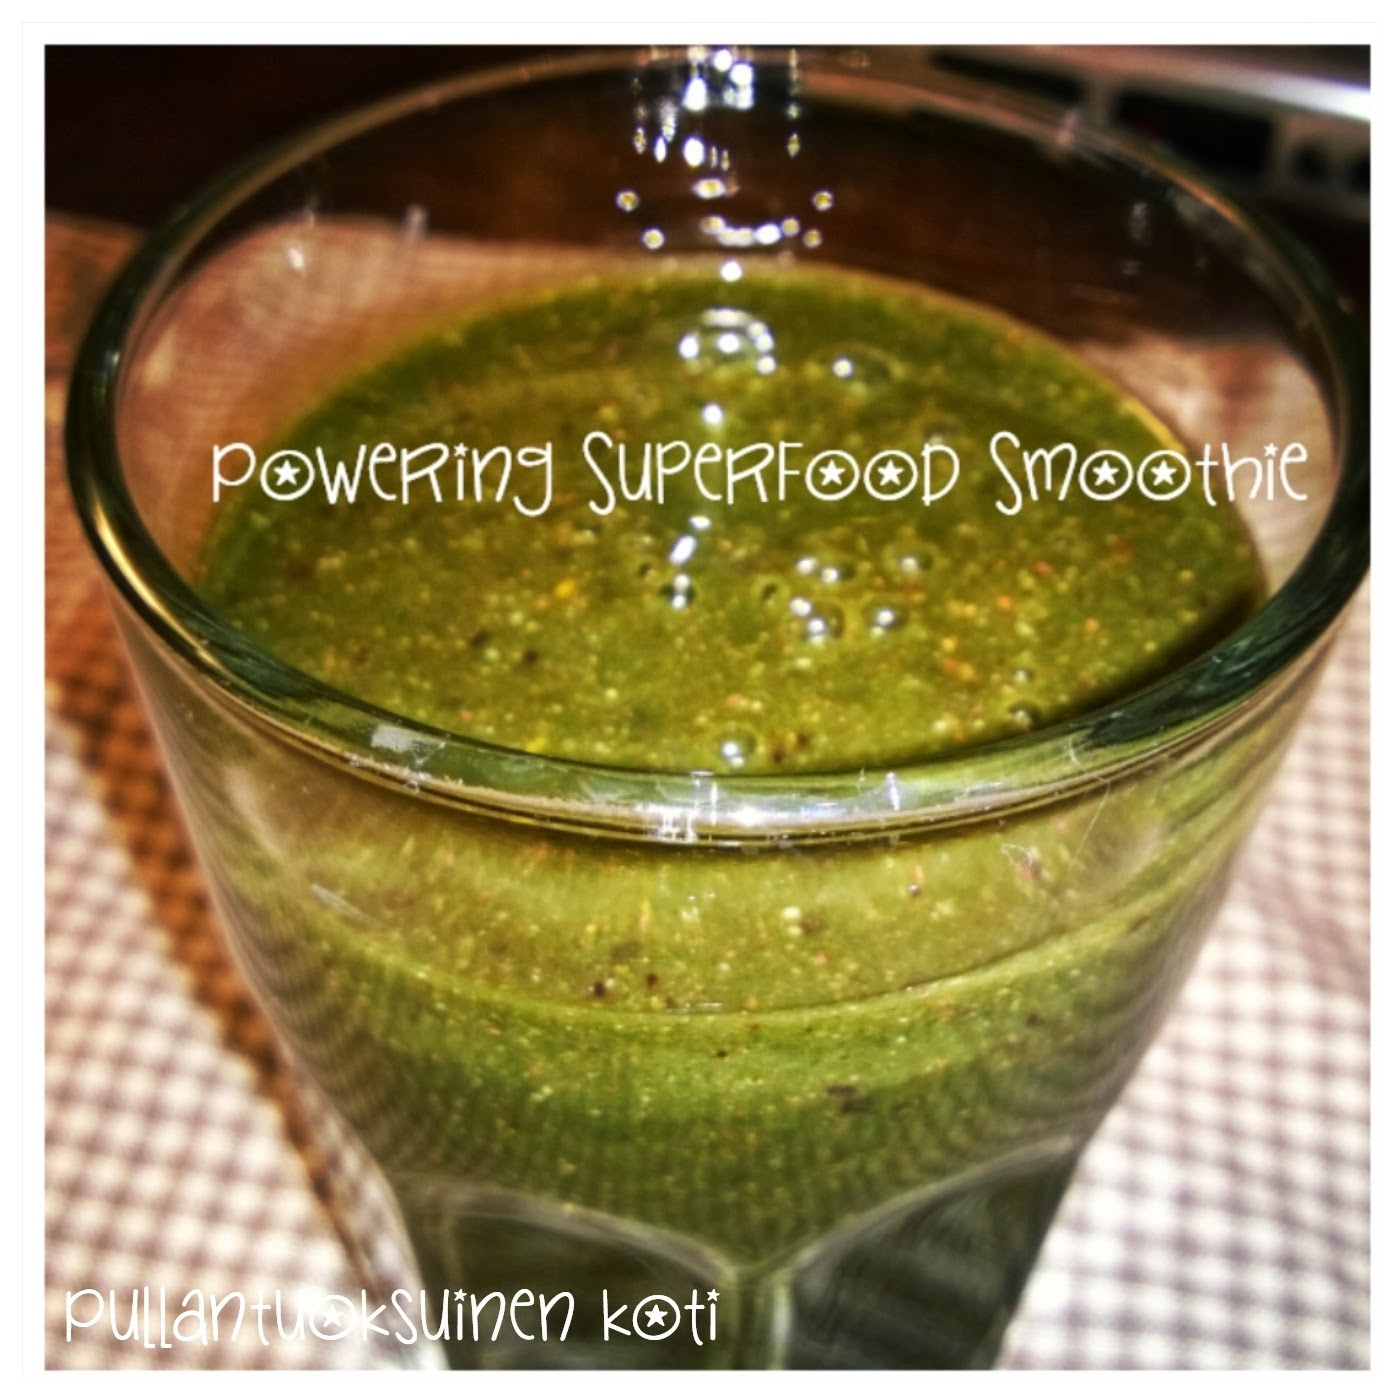 Powering Superfood Smoothie ja Pukka Vitalise